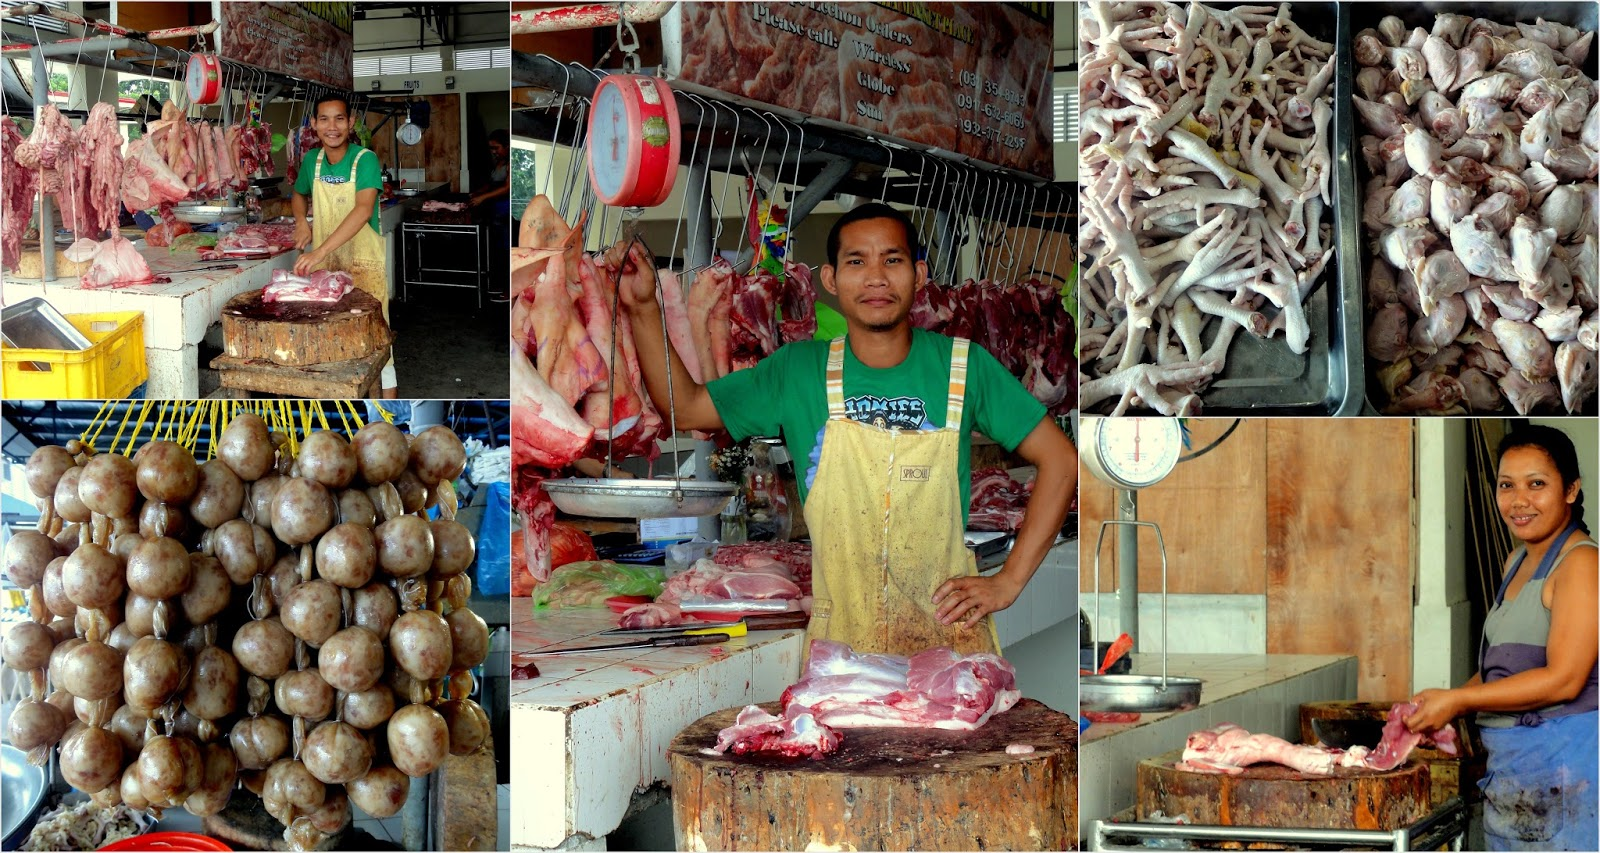 Philippine Local Market: The ?Market Place? in Minglanilla, Cebu